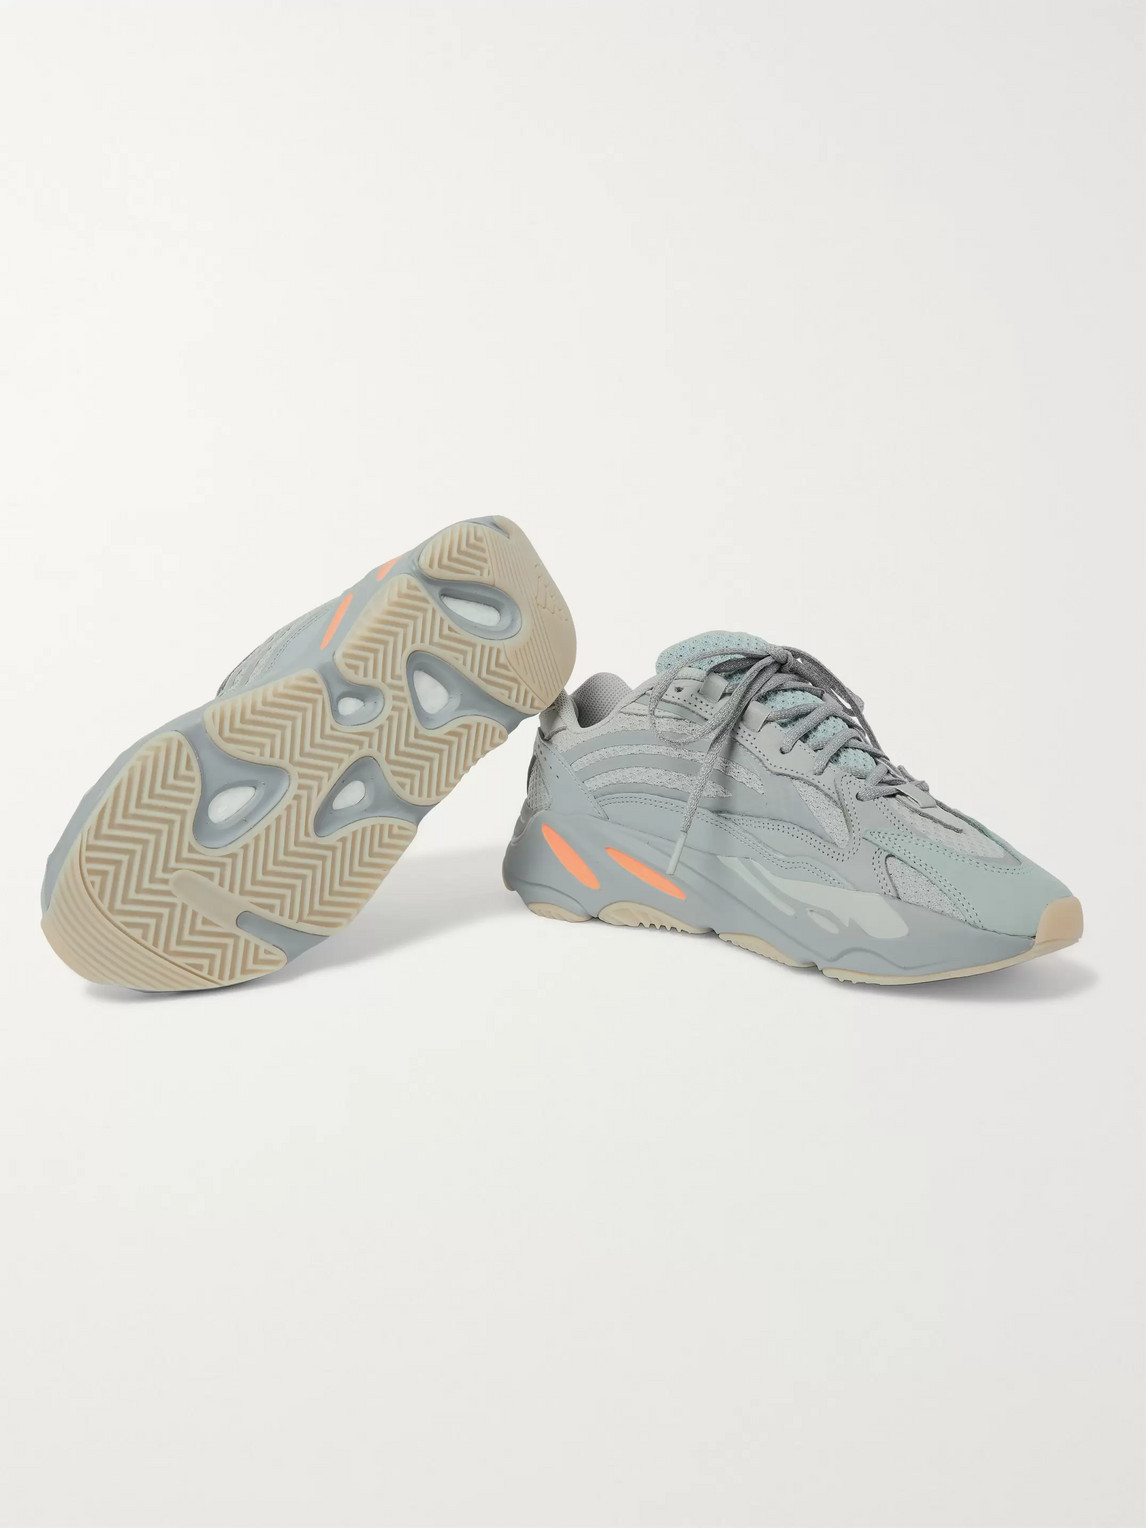 Adidas Originals Sneakers YEEZY BOOST 700 V2 SUEDE, MESH AND LEATHER SNEAKERS